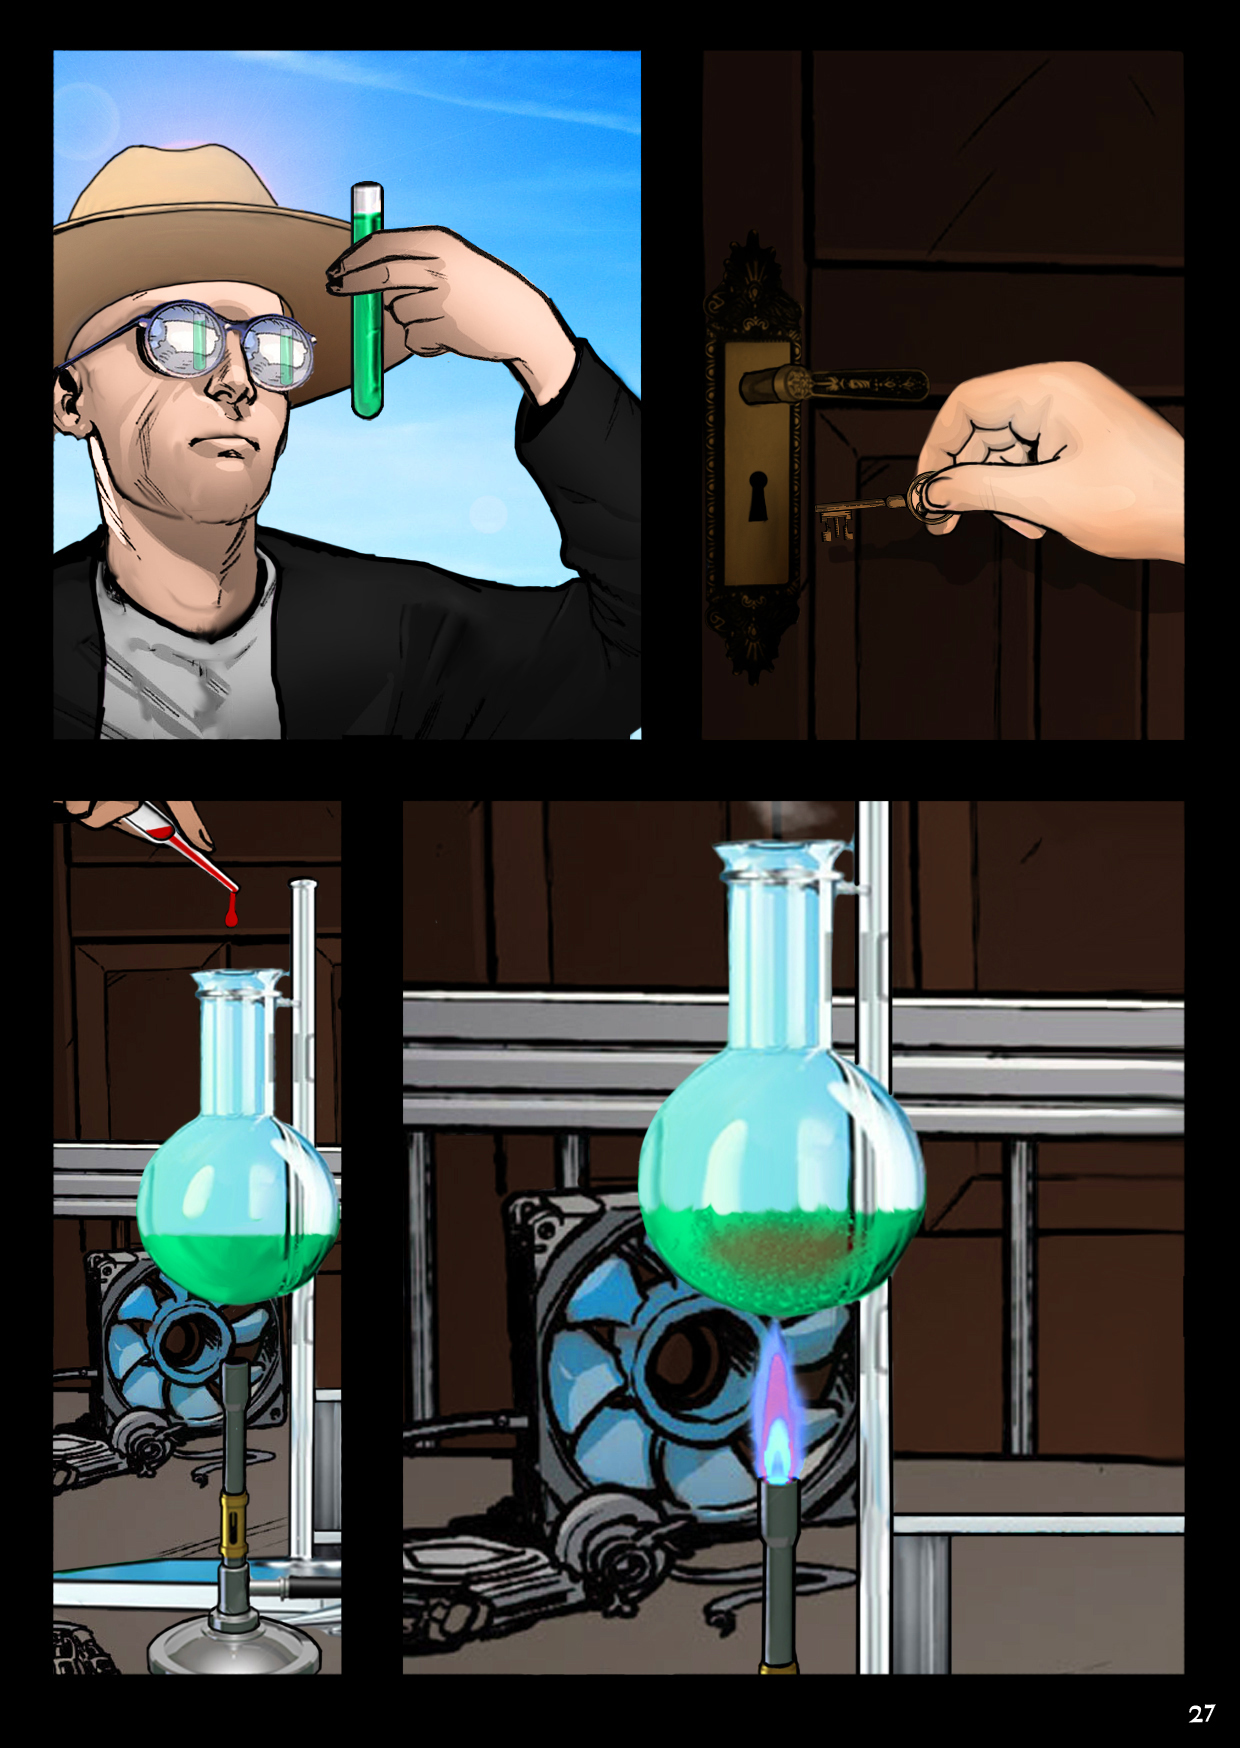 Down in his basement laboratory, Dr. Vragov goes to work one more time on a tube of green fluid.